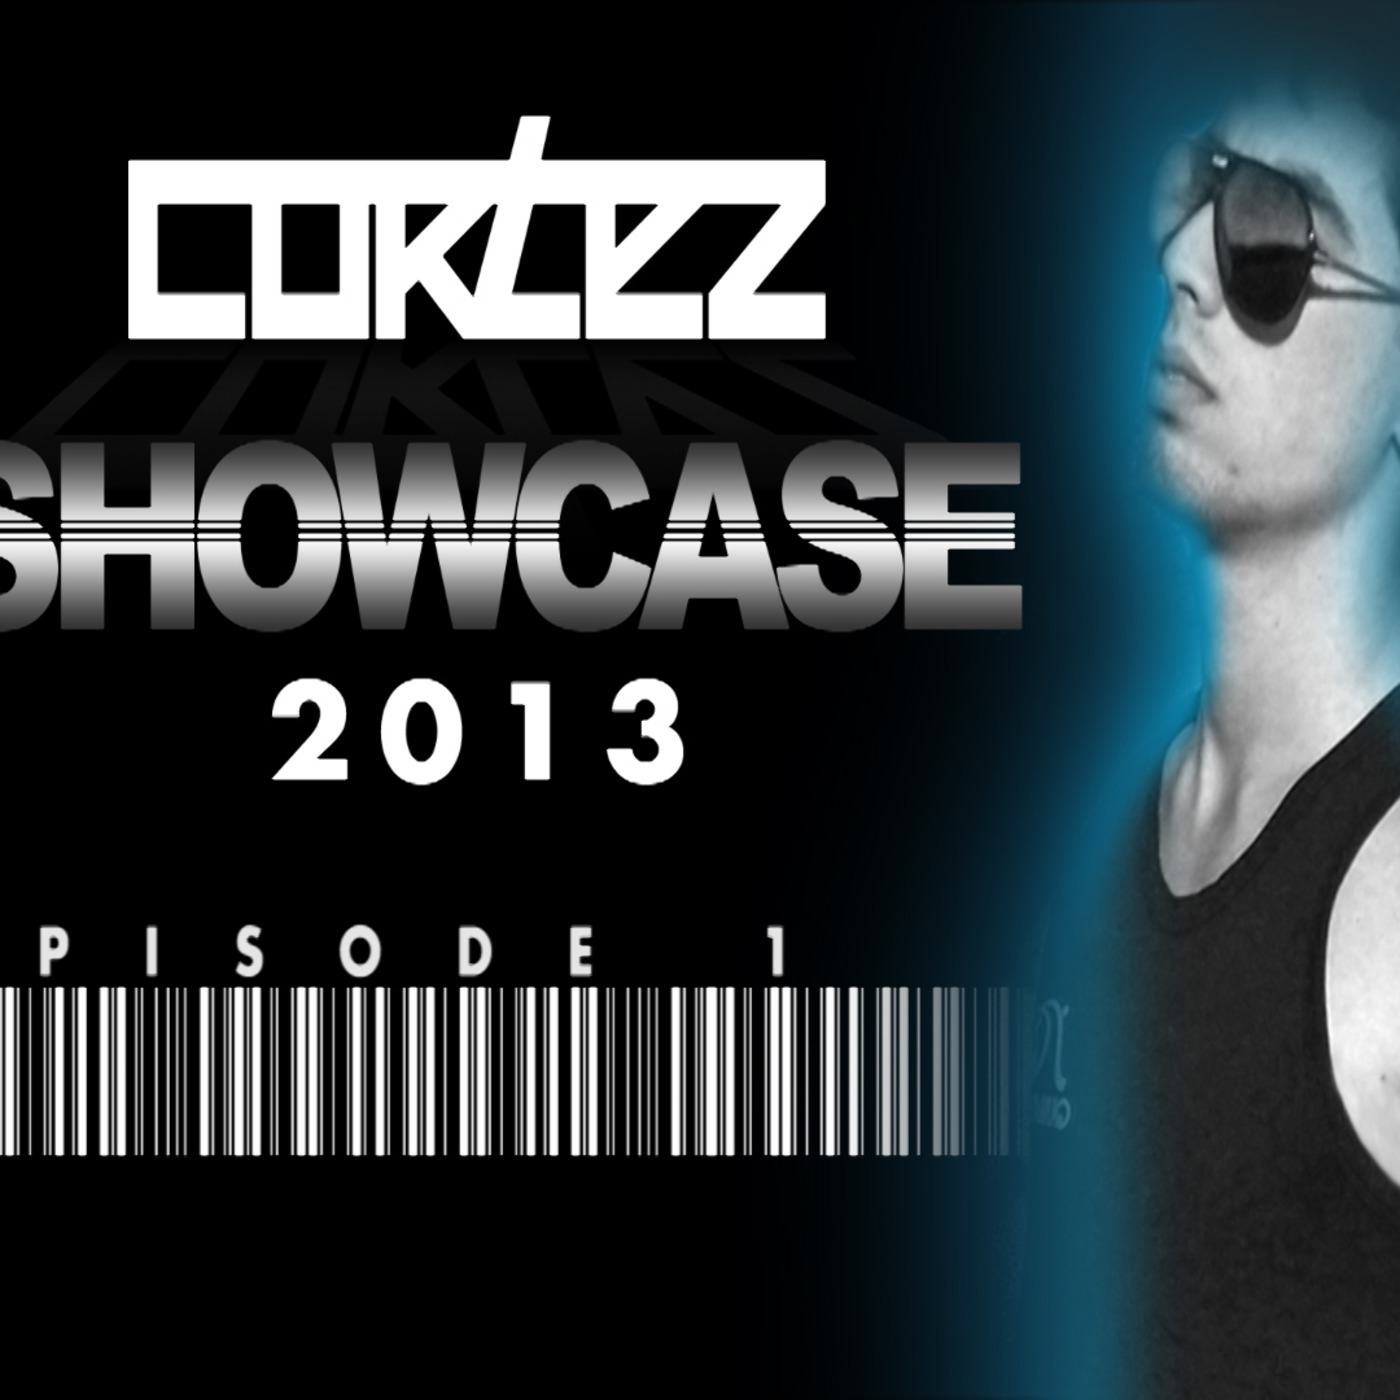 Cortez Showcase 2013